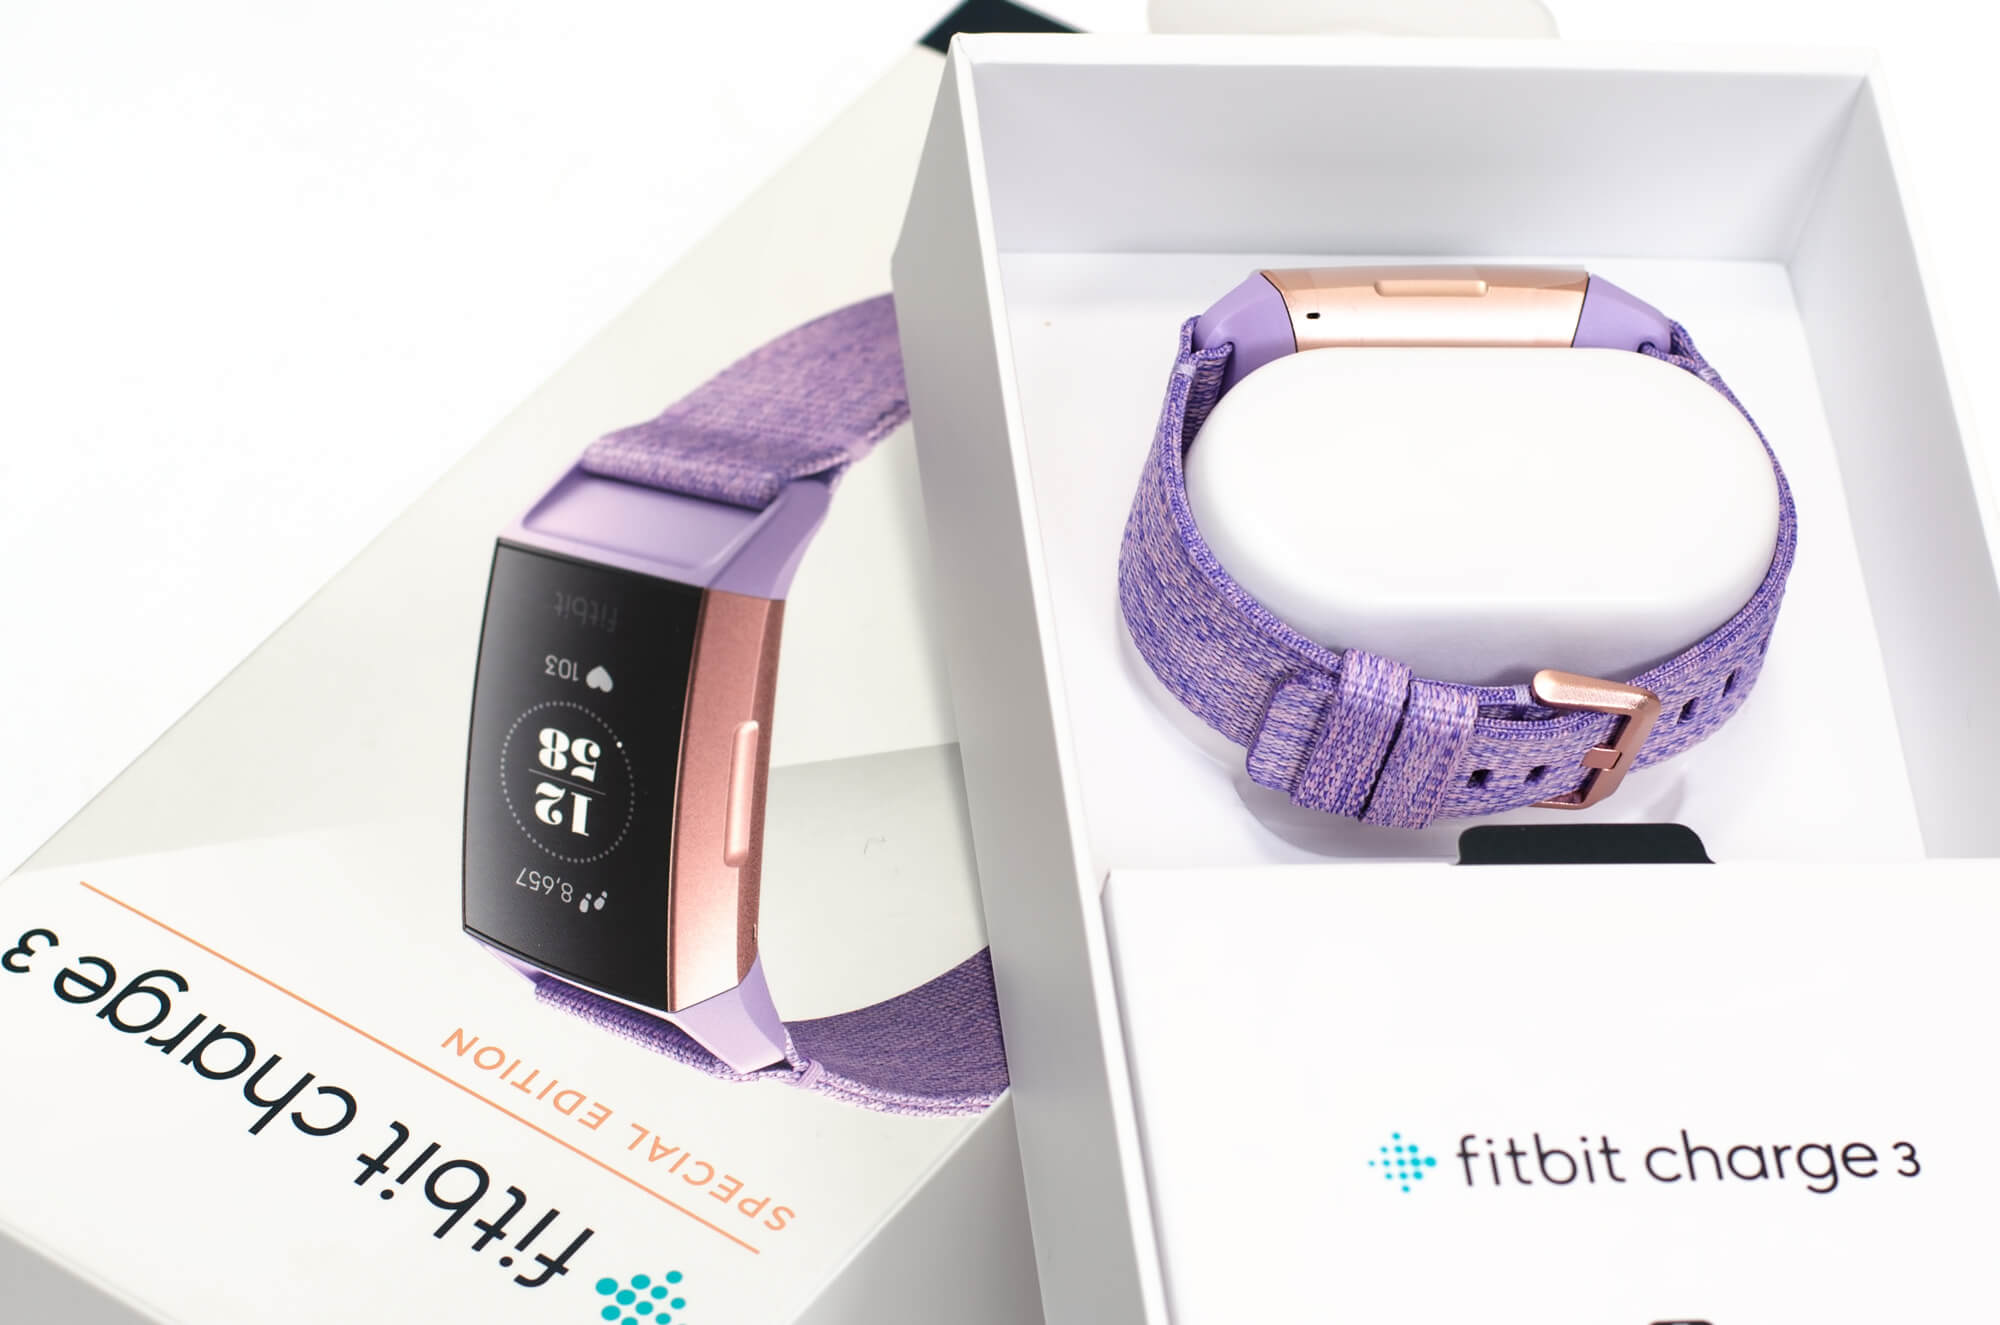 Fitbit Charge 3 - Verpackungsinhalt